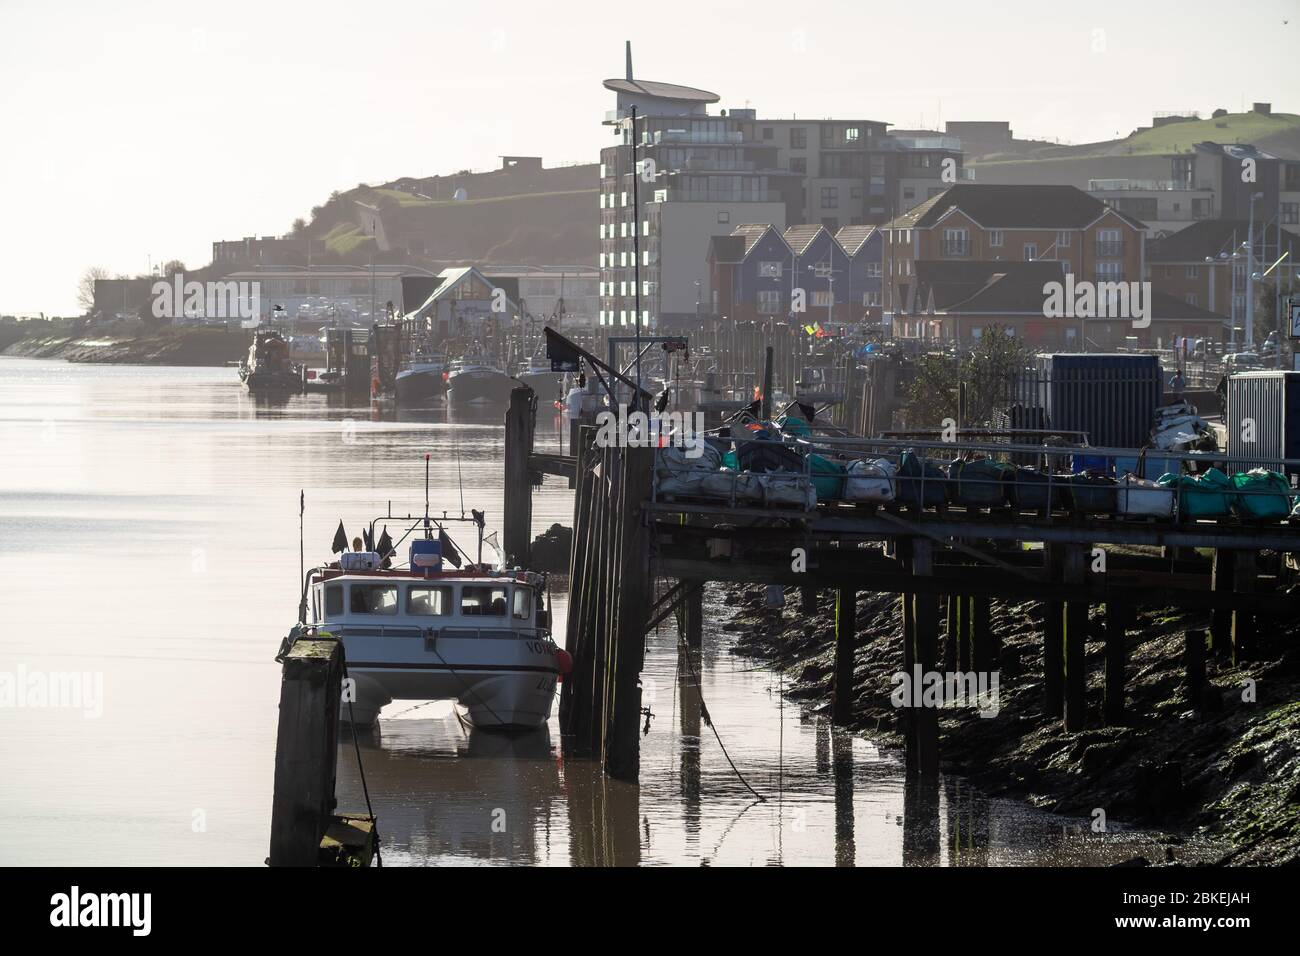 Boats along Newhaven West Quay, East Sussex. UK Stock Photo